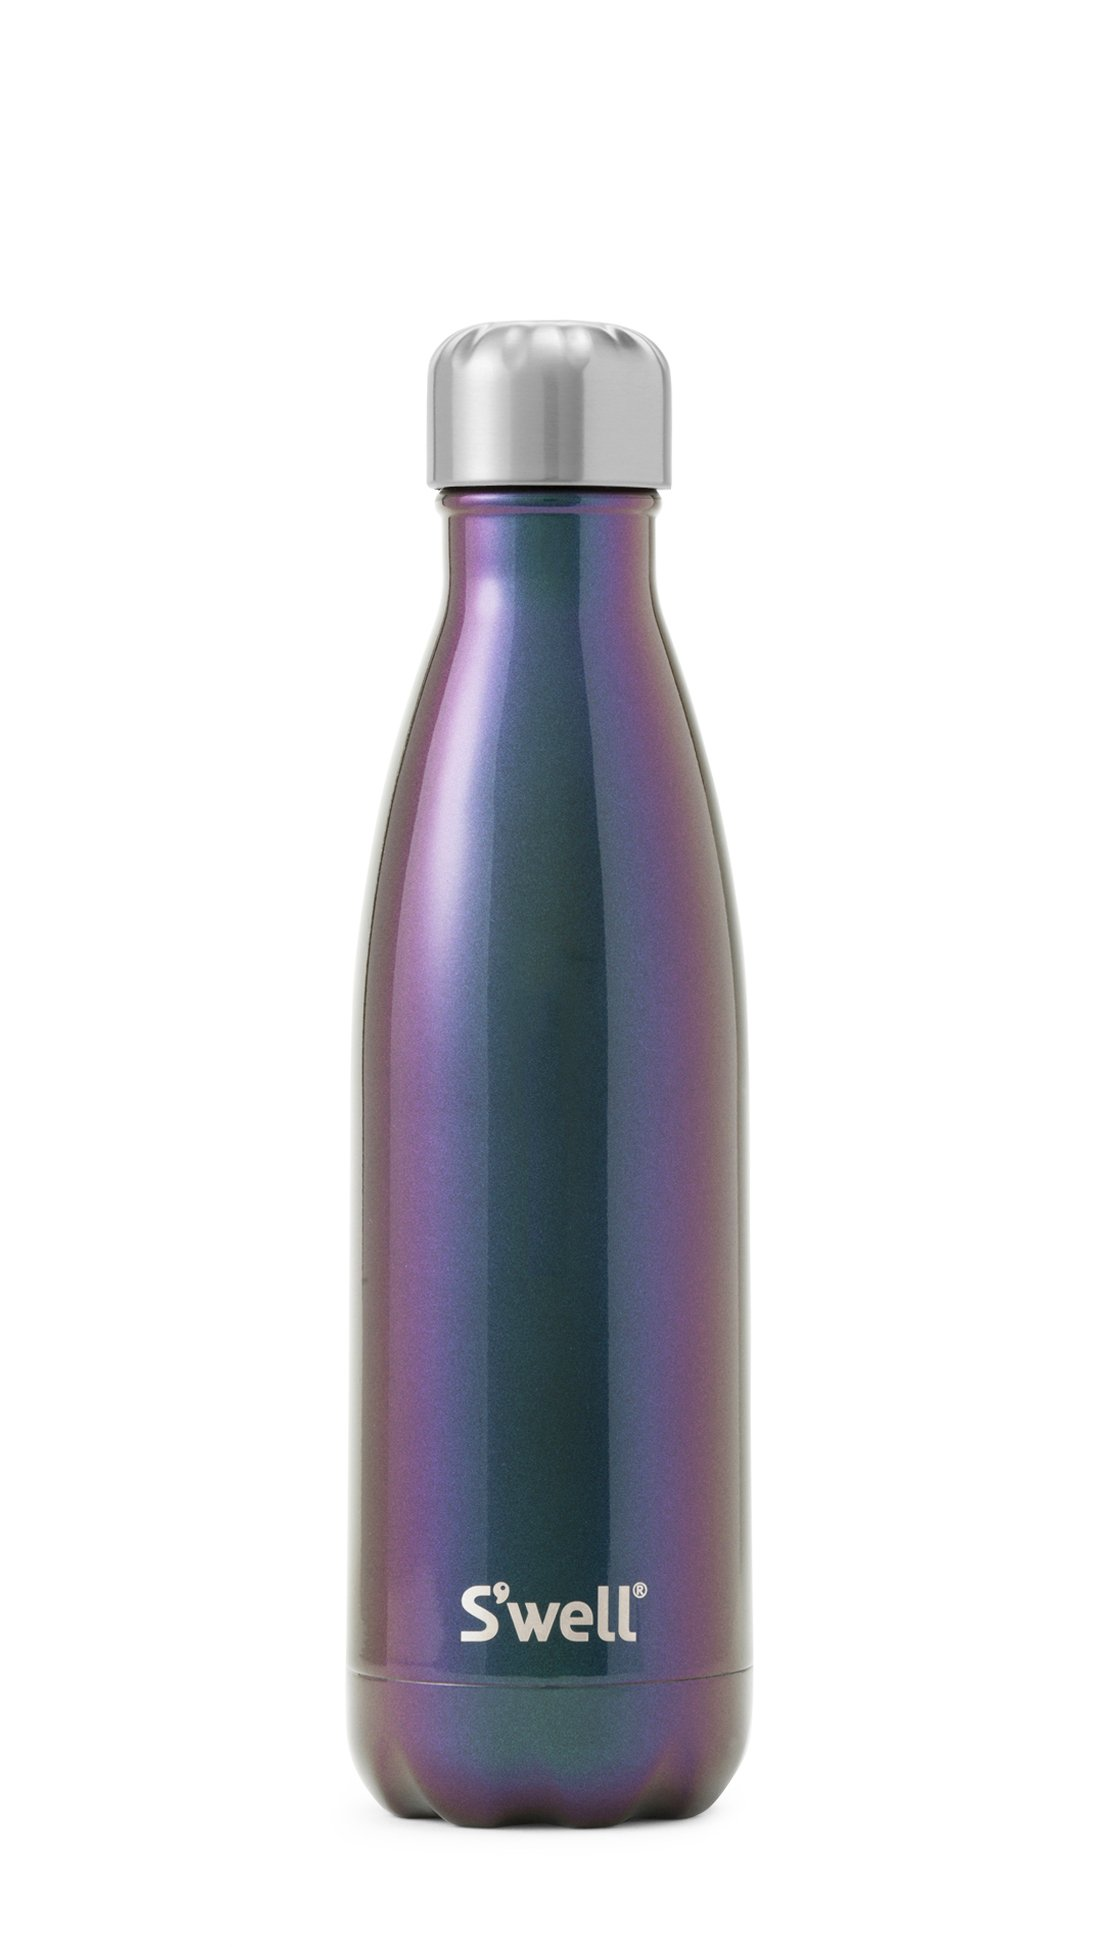 S'well Vacuum Insulated Stainless Steel Water Bottle, 17 oz by S'well